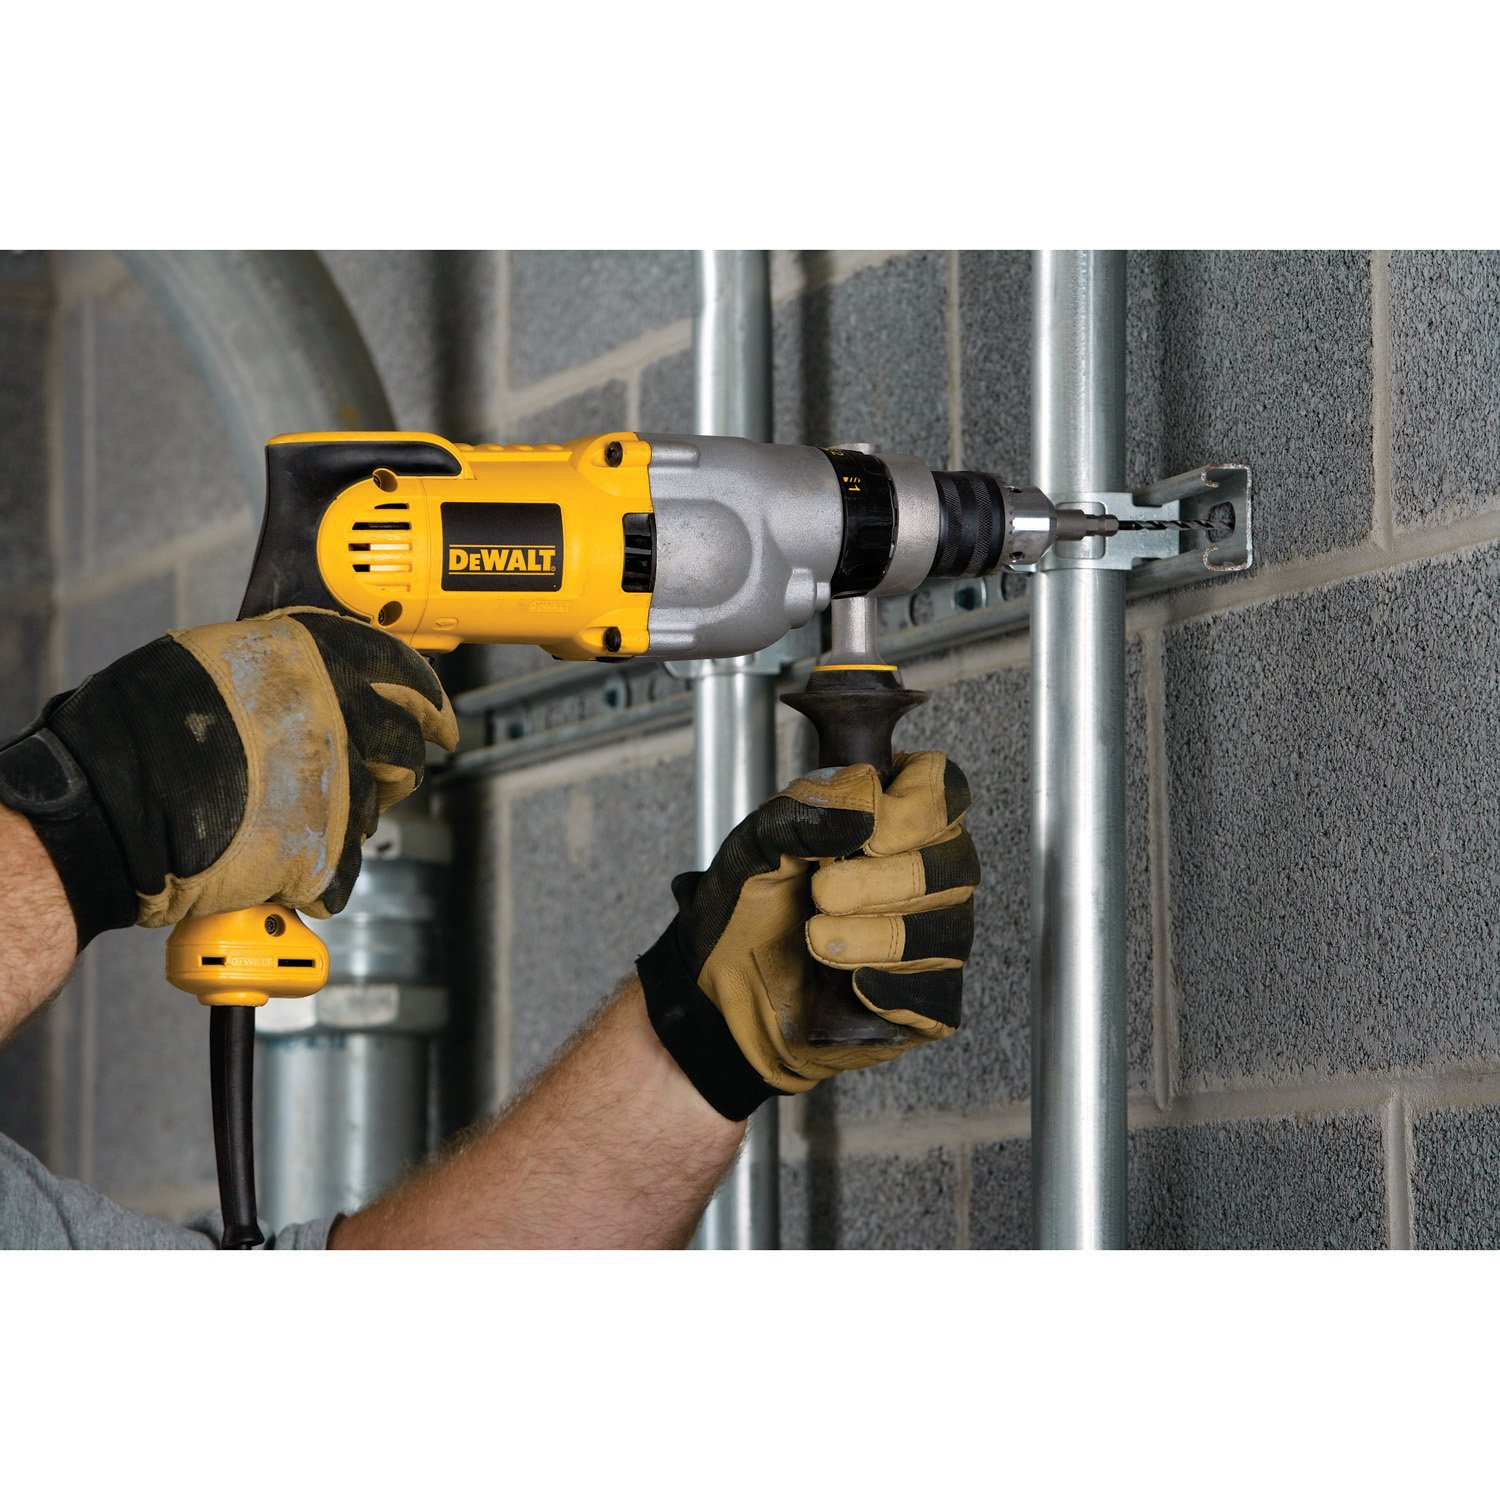 81bJT9ou5eL._SL1500_ dewalt dwd520 1 2 inch vsr pistol grip hammerdrill power pistol  at nearapp.co